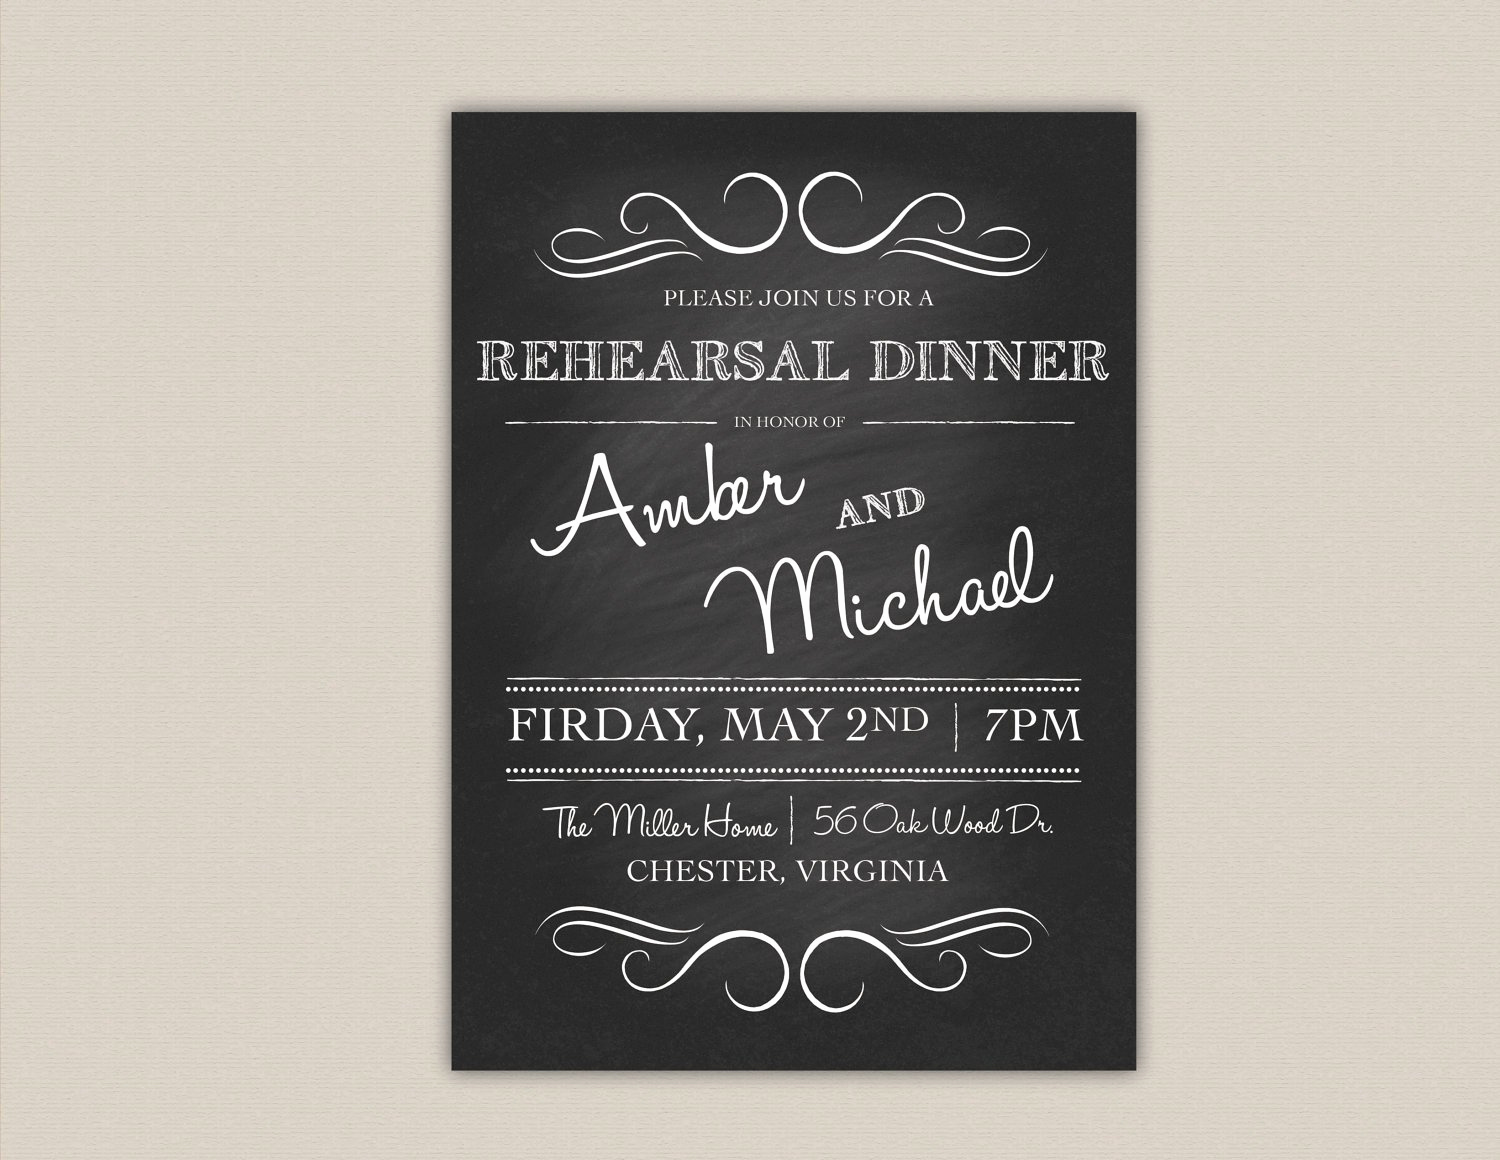 Rehearsal Dinner Invitation Template Lovely Rehearsal Dinner Invitation Template